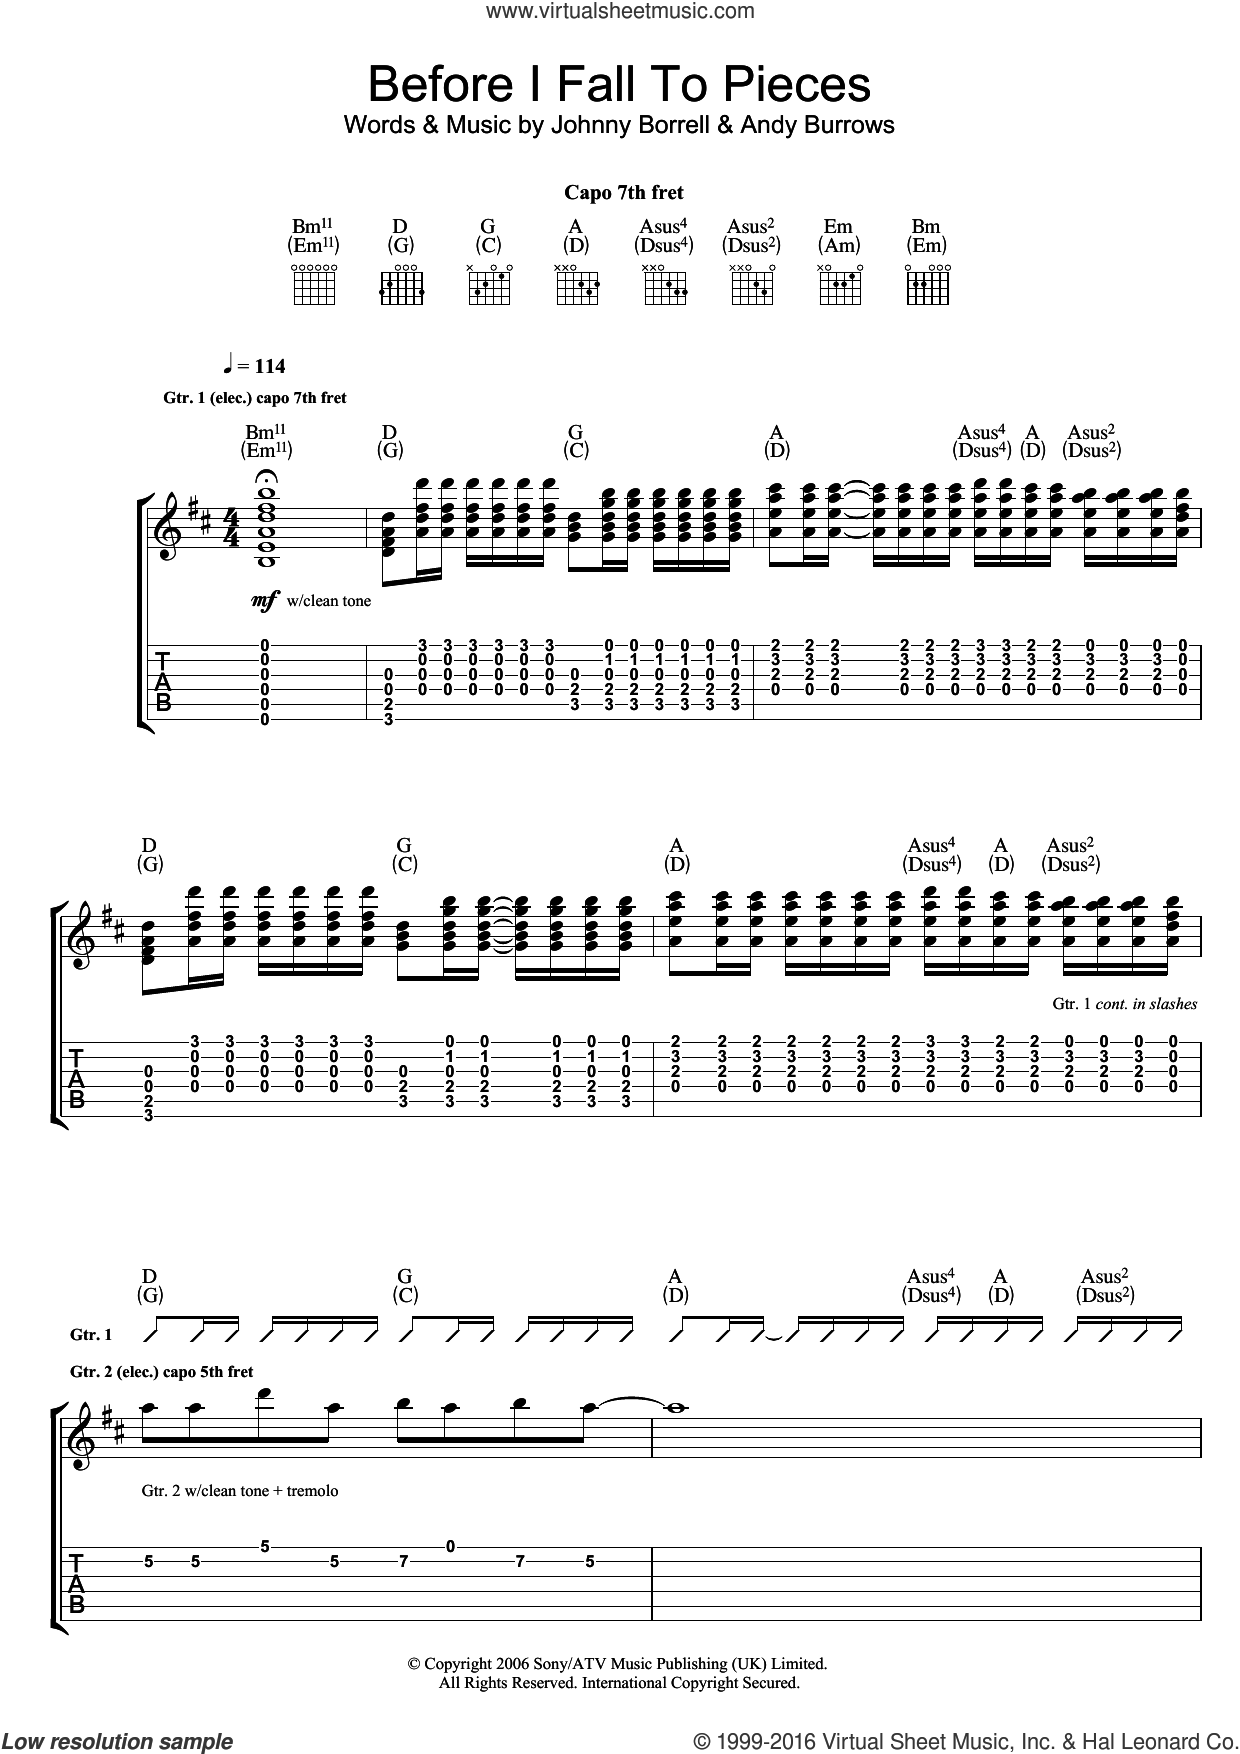 Before I Fall To Pieces sheet music for guitar (tablature) by Razorlight, Andy Burrows and Johnny Borrell, intermediate skill level